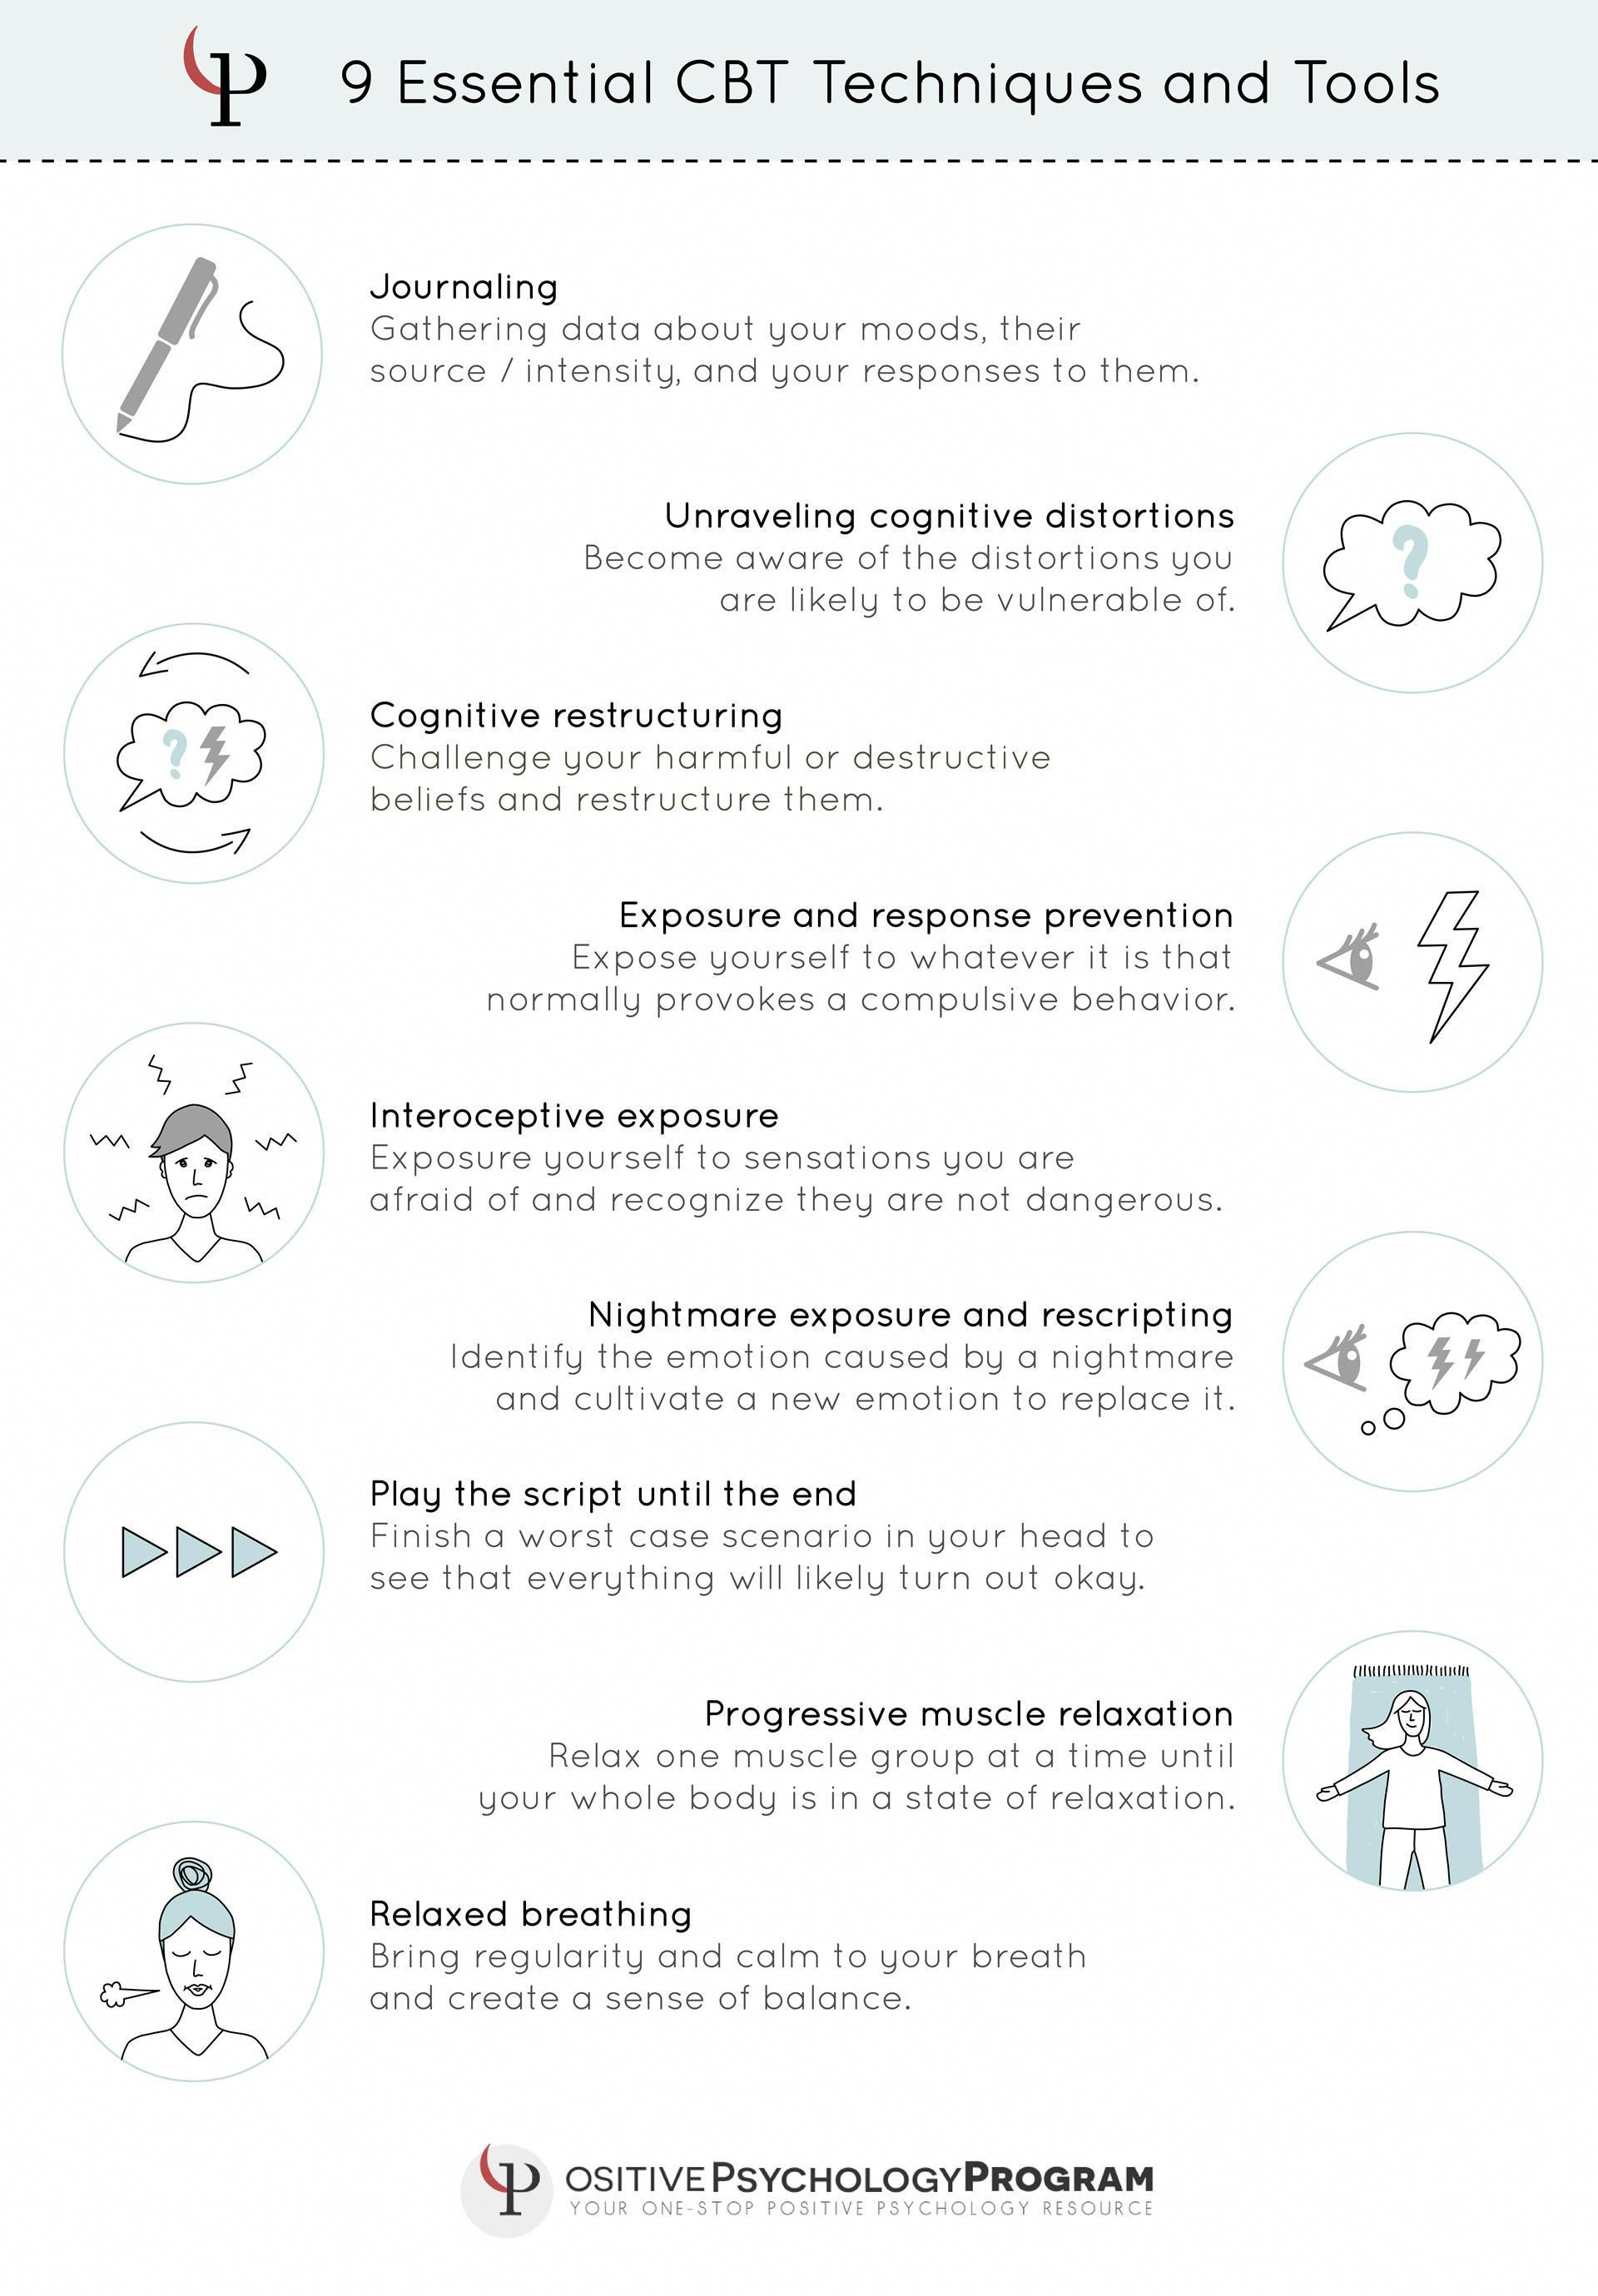 Cbt Techniques And Tools Infographic Cbttherapy